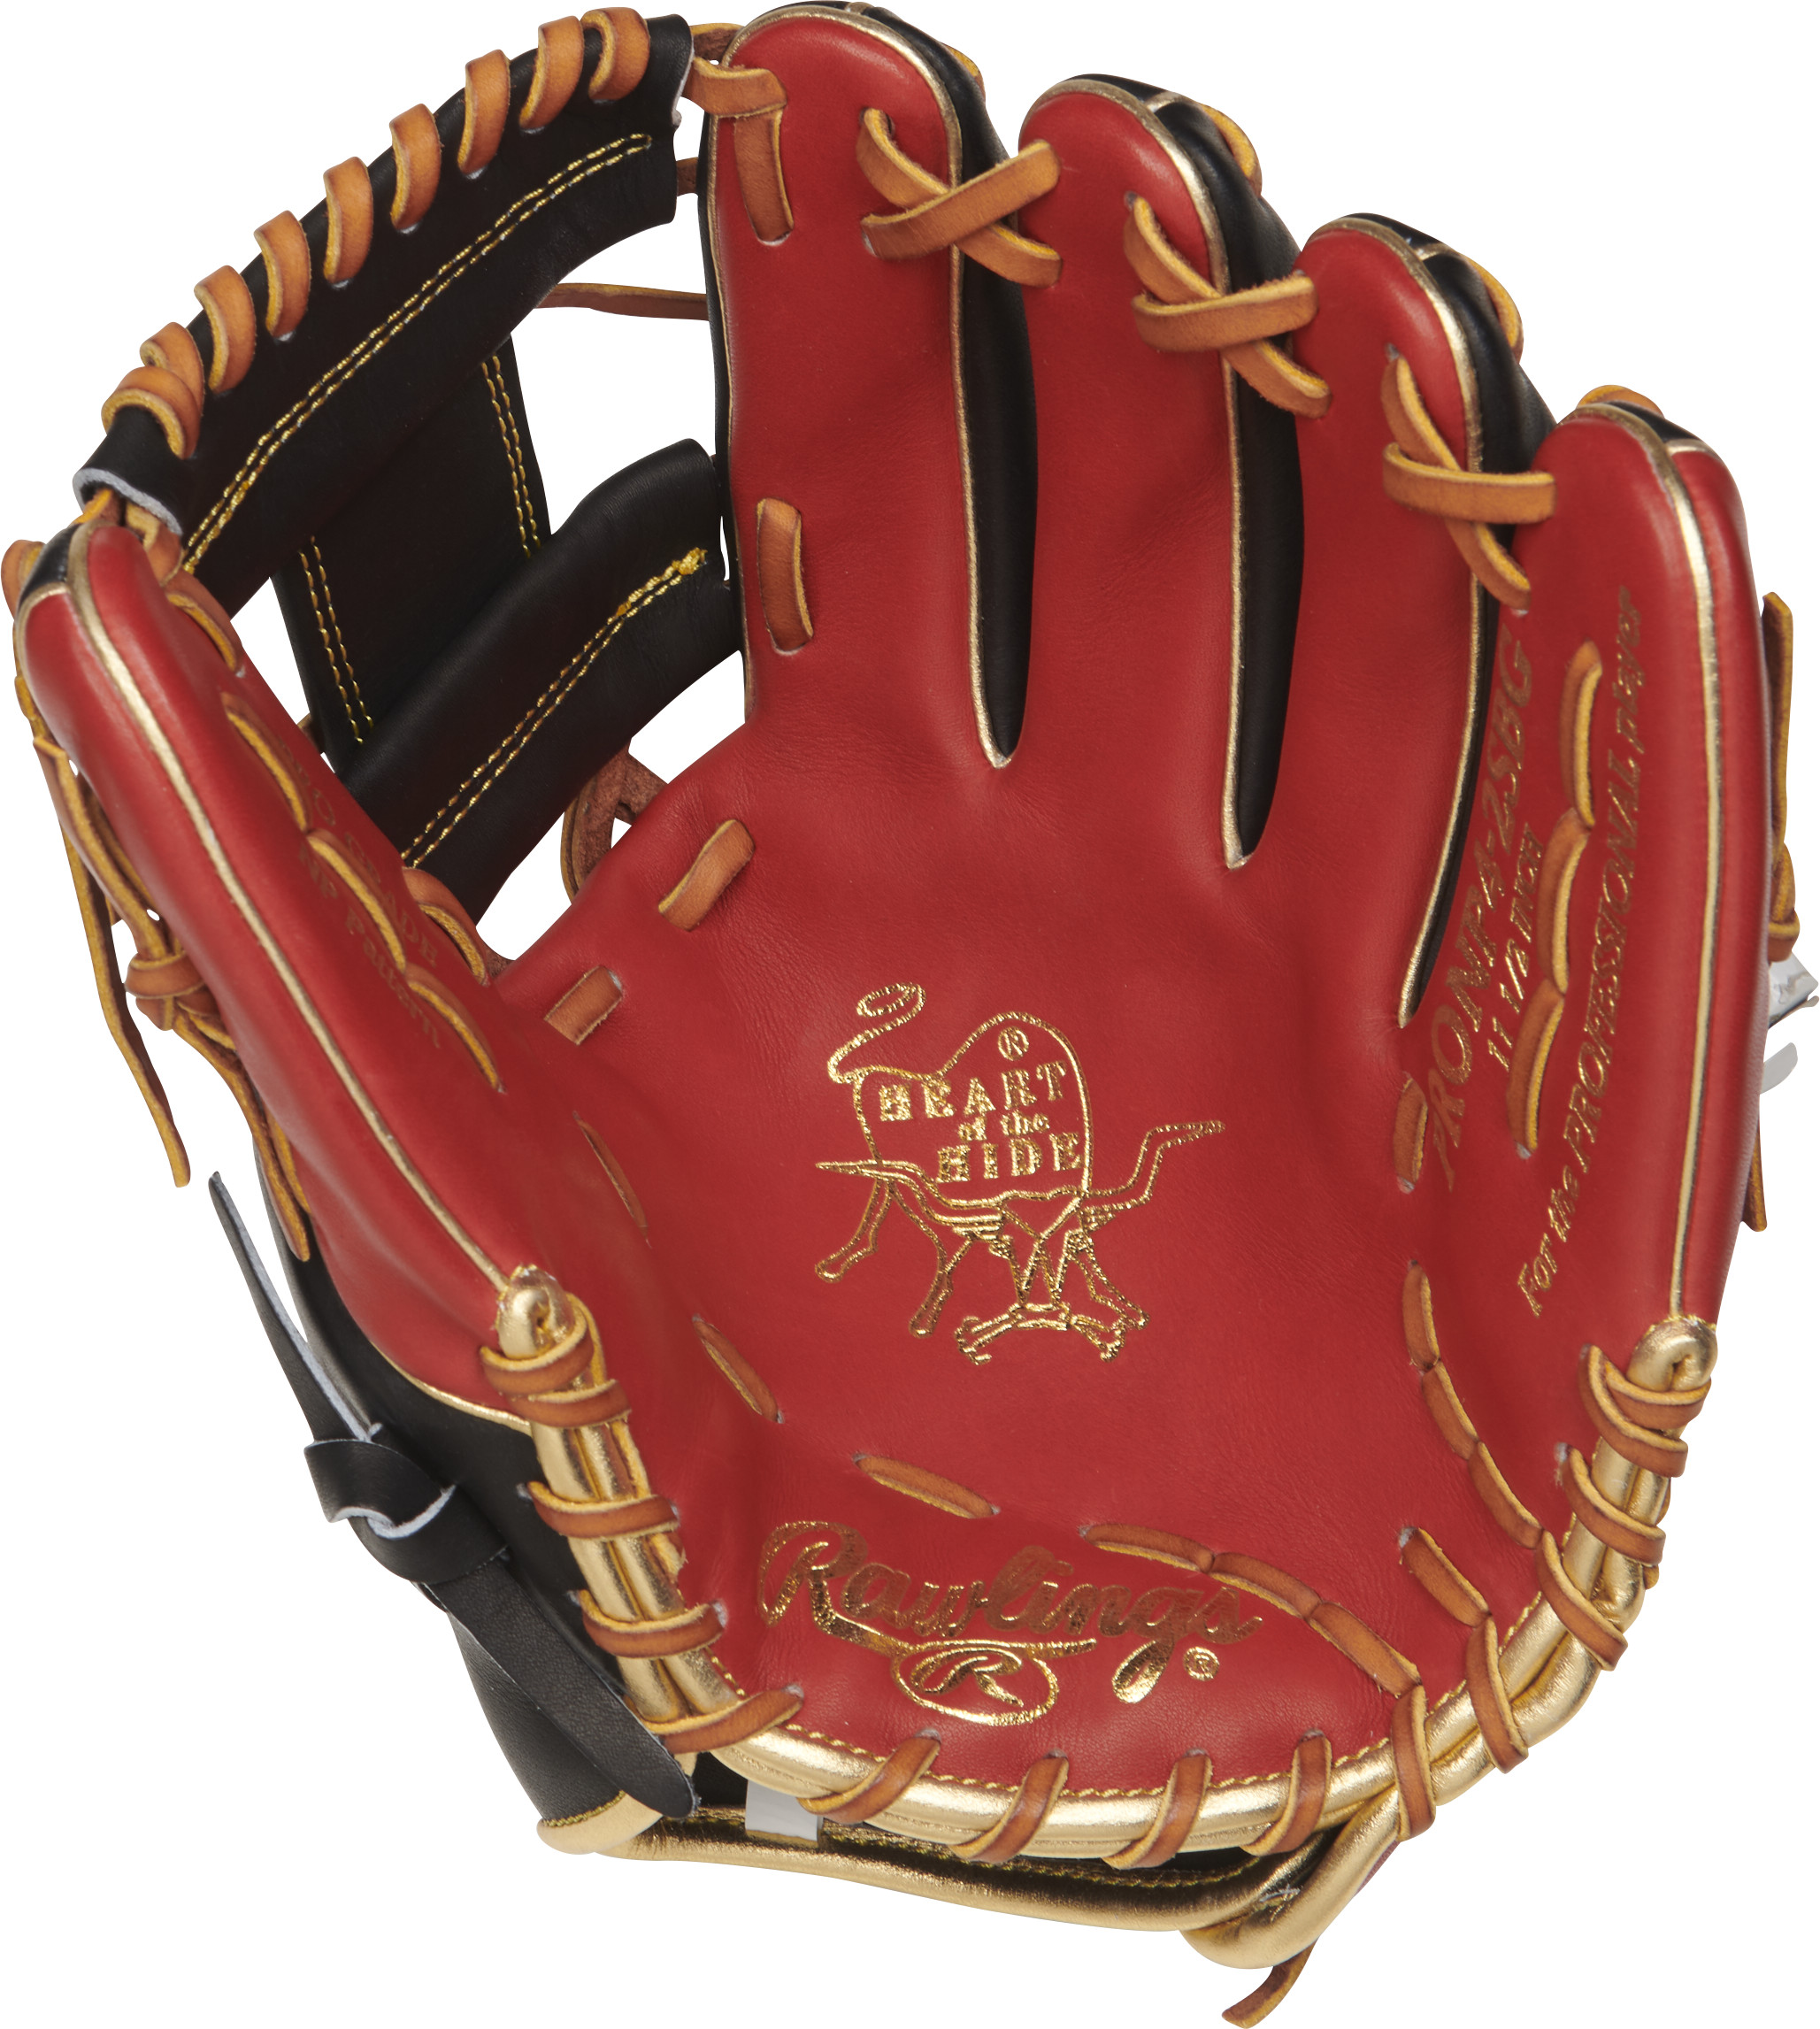 http://www.bestbatdeals.com/images/rawlingsgloves/PRONp4-2sBG-1.jpg